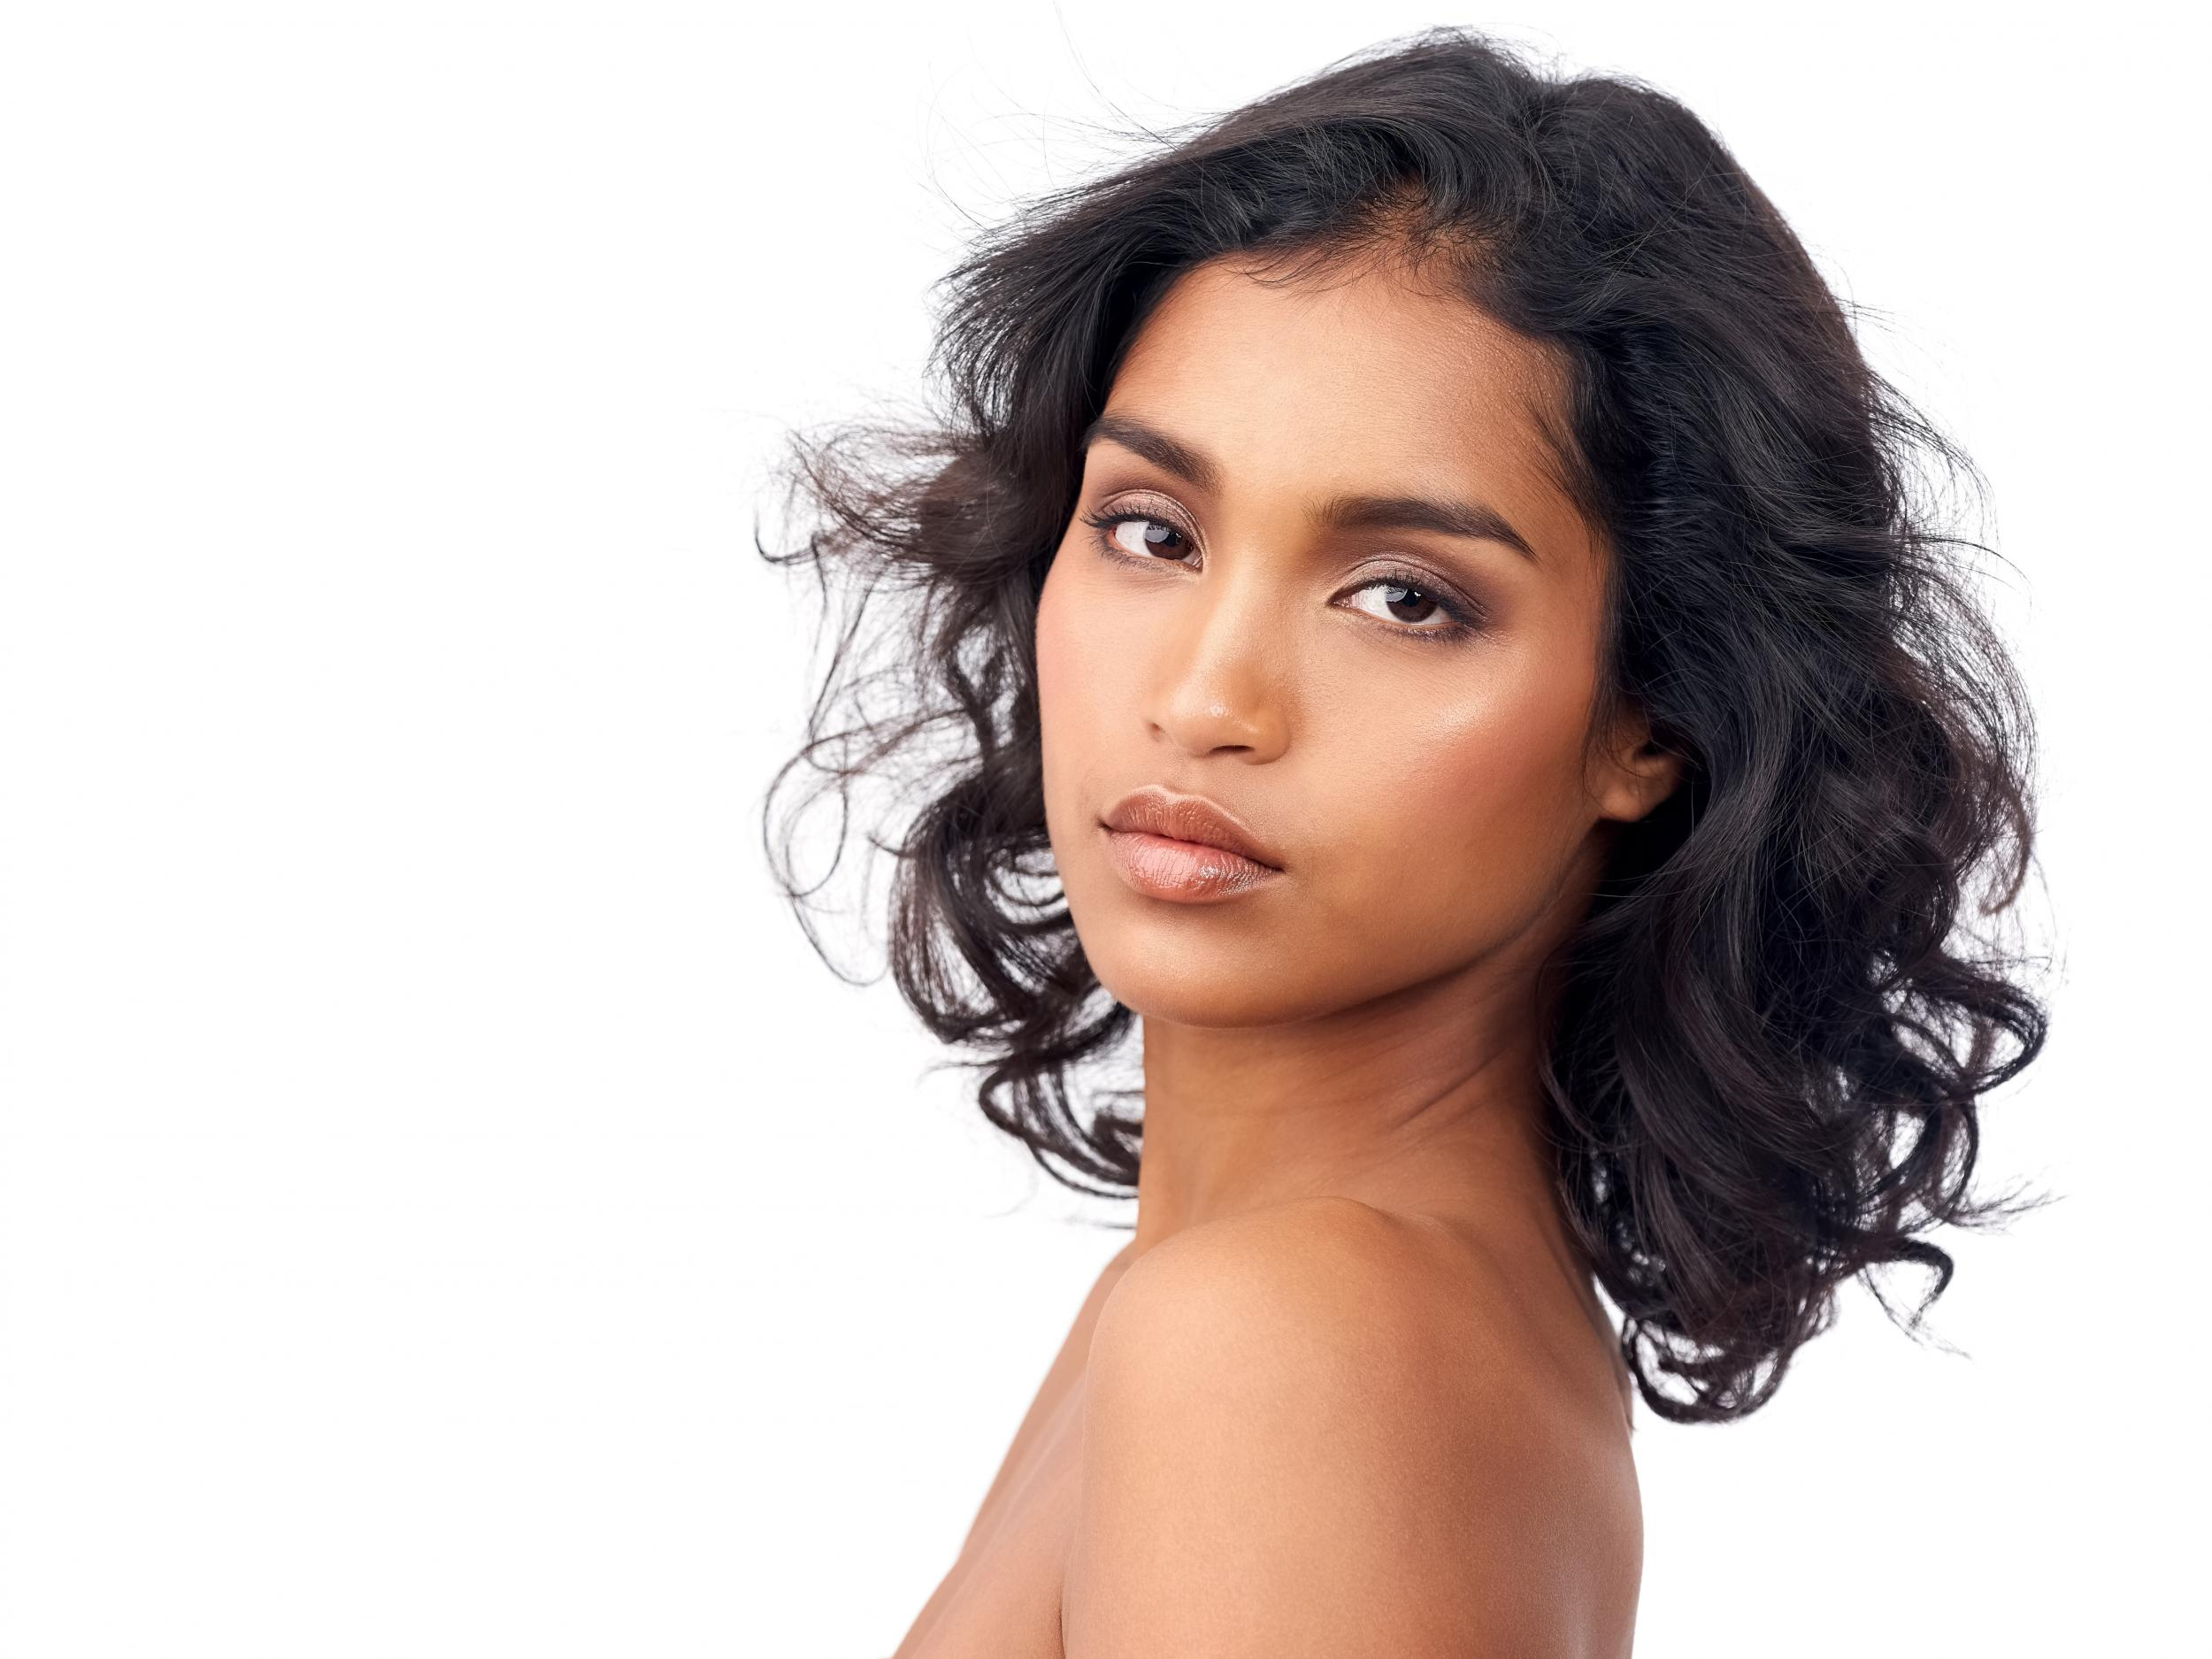 11 Best Foundations For Asian Skin The Independent